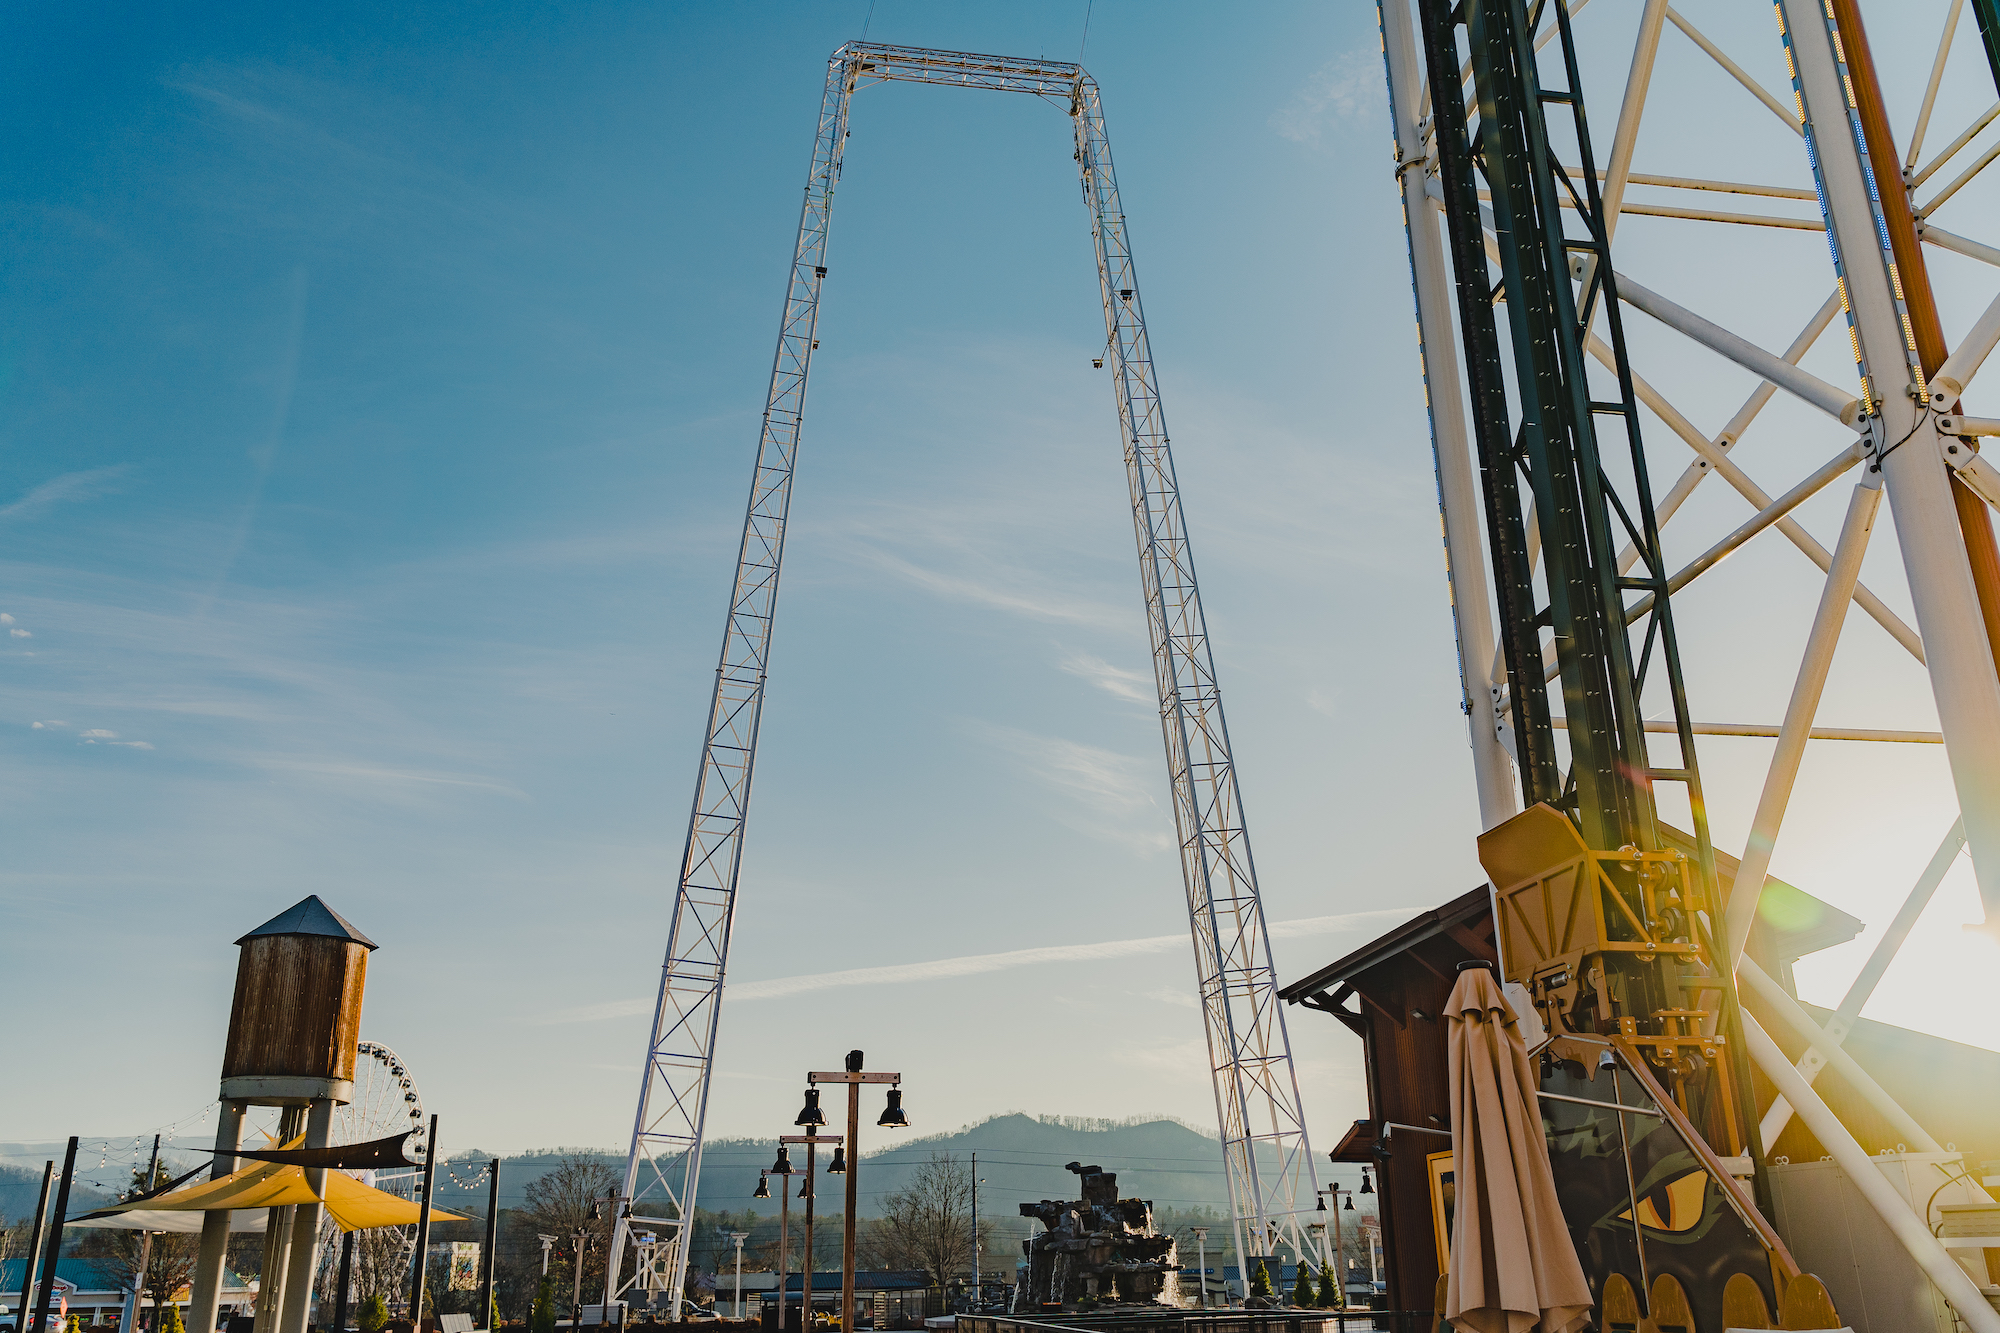 the tall tower of the mountain monster ride at the mountain mile in Pigeon Forge Tennessee